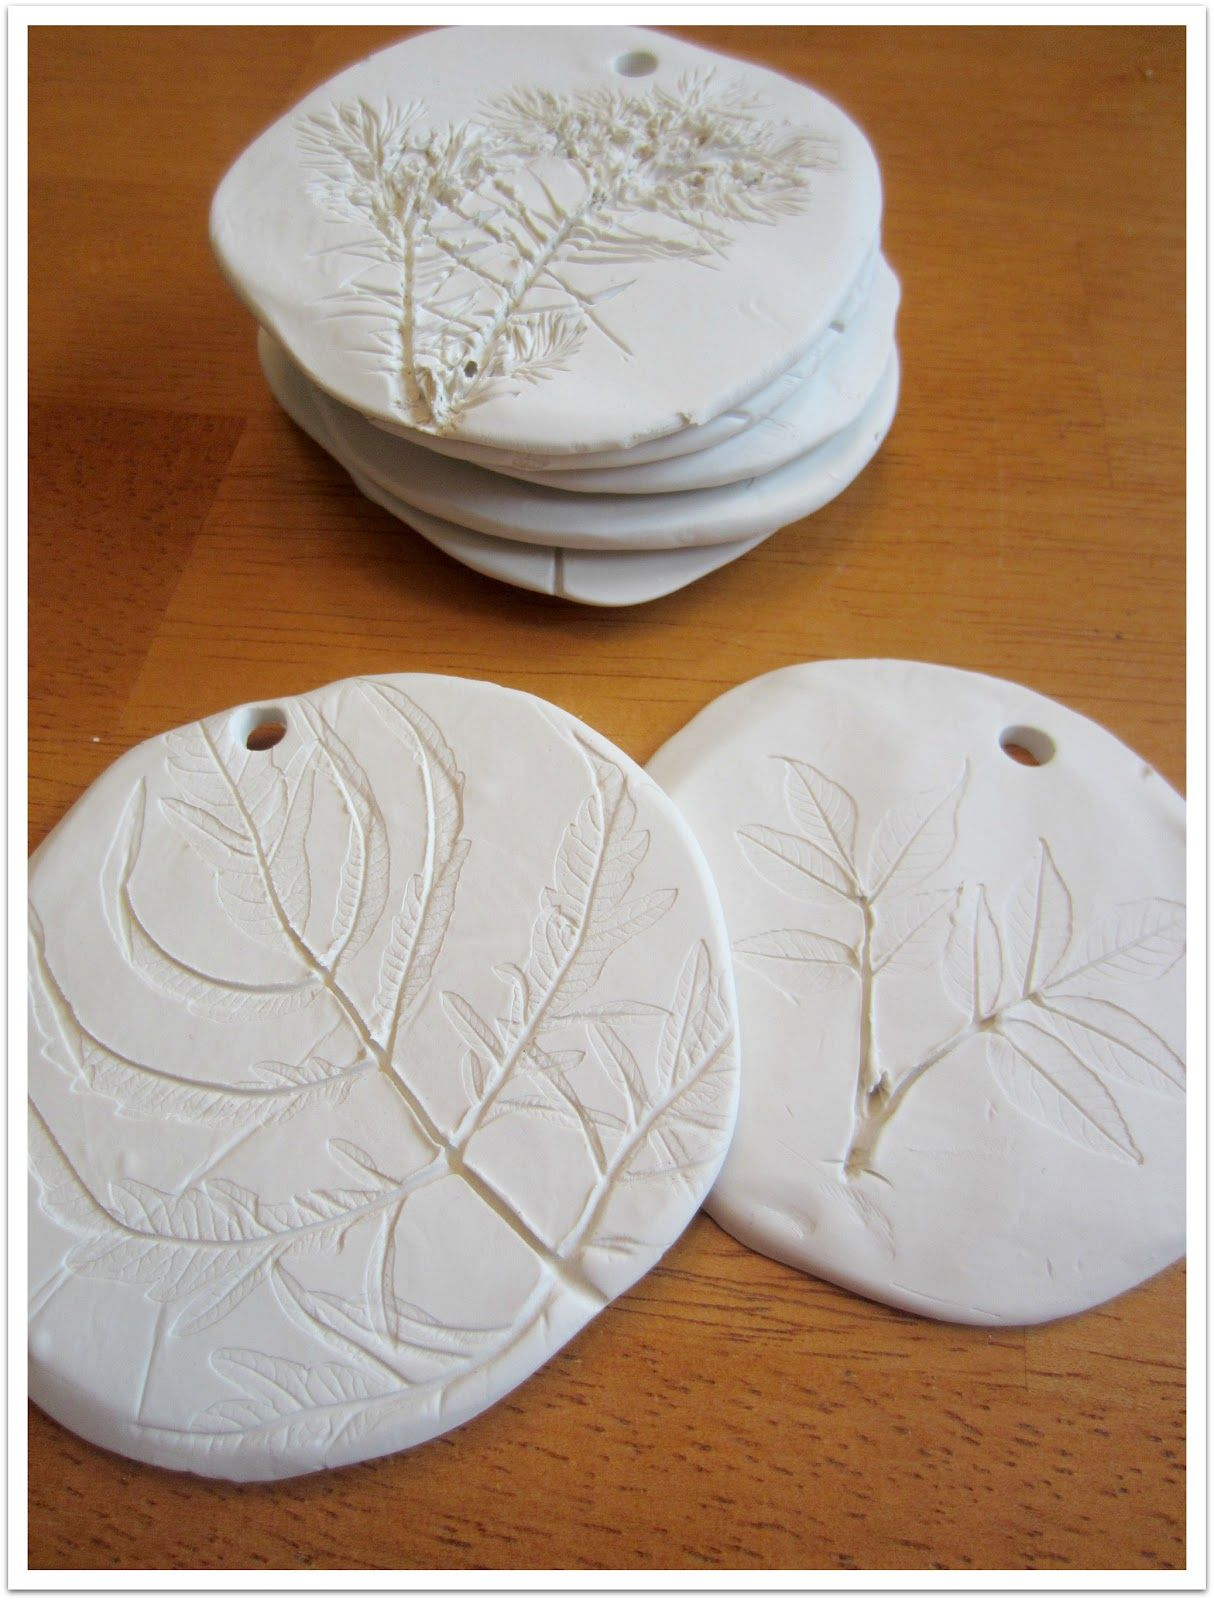 Relentlessly fun deceptively educational clay leaf imprints a